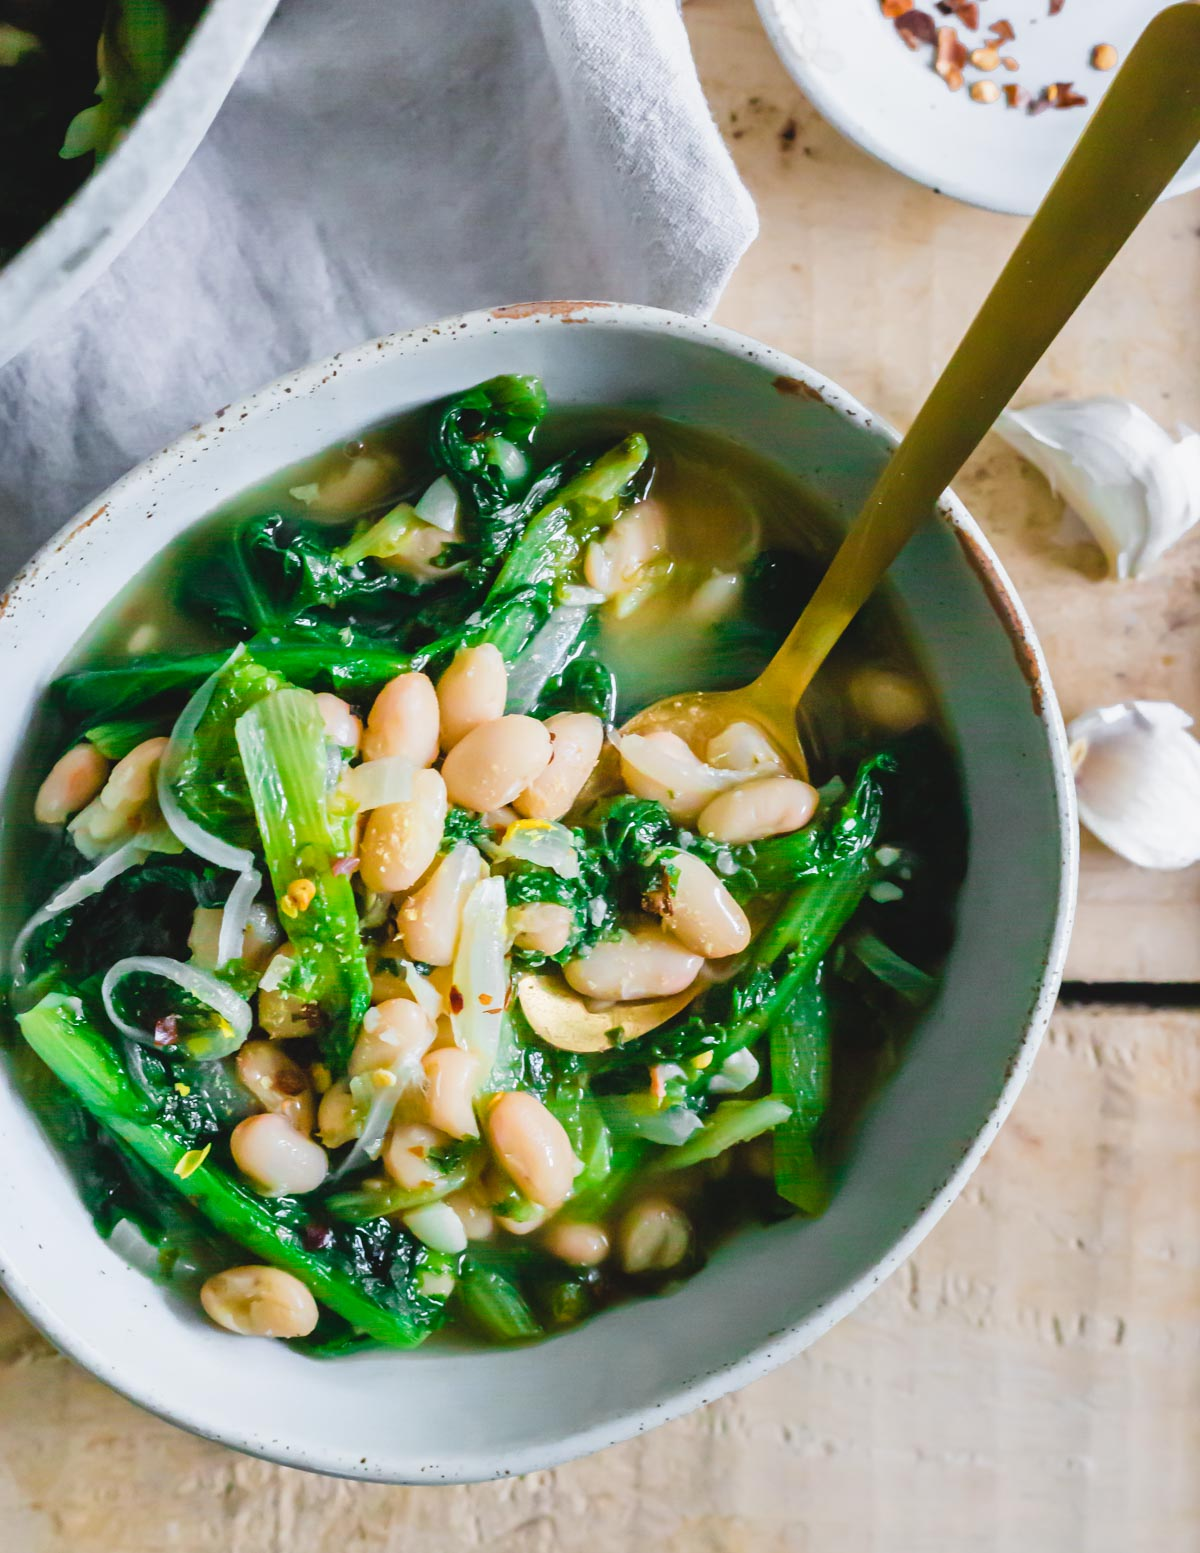 Recipe for escarole and cannellini beans in a bowl.